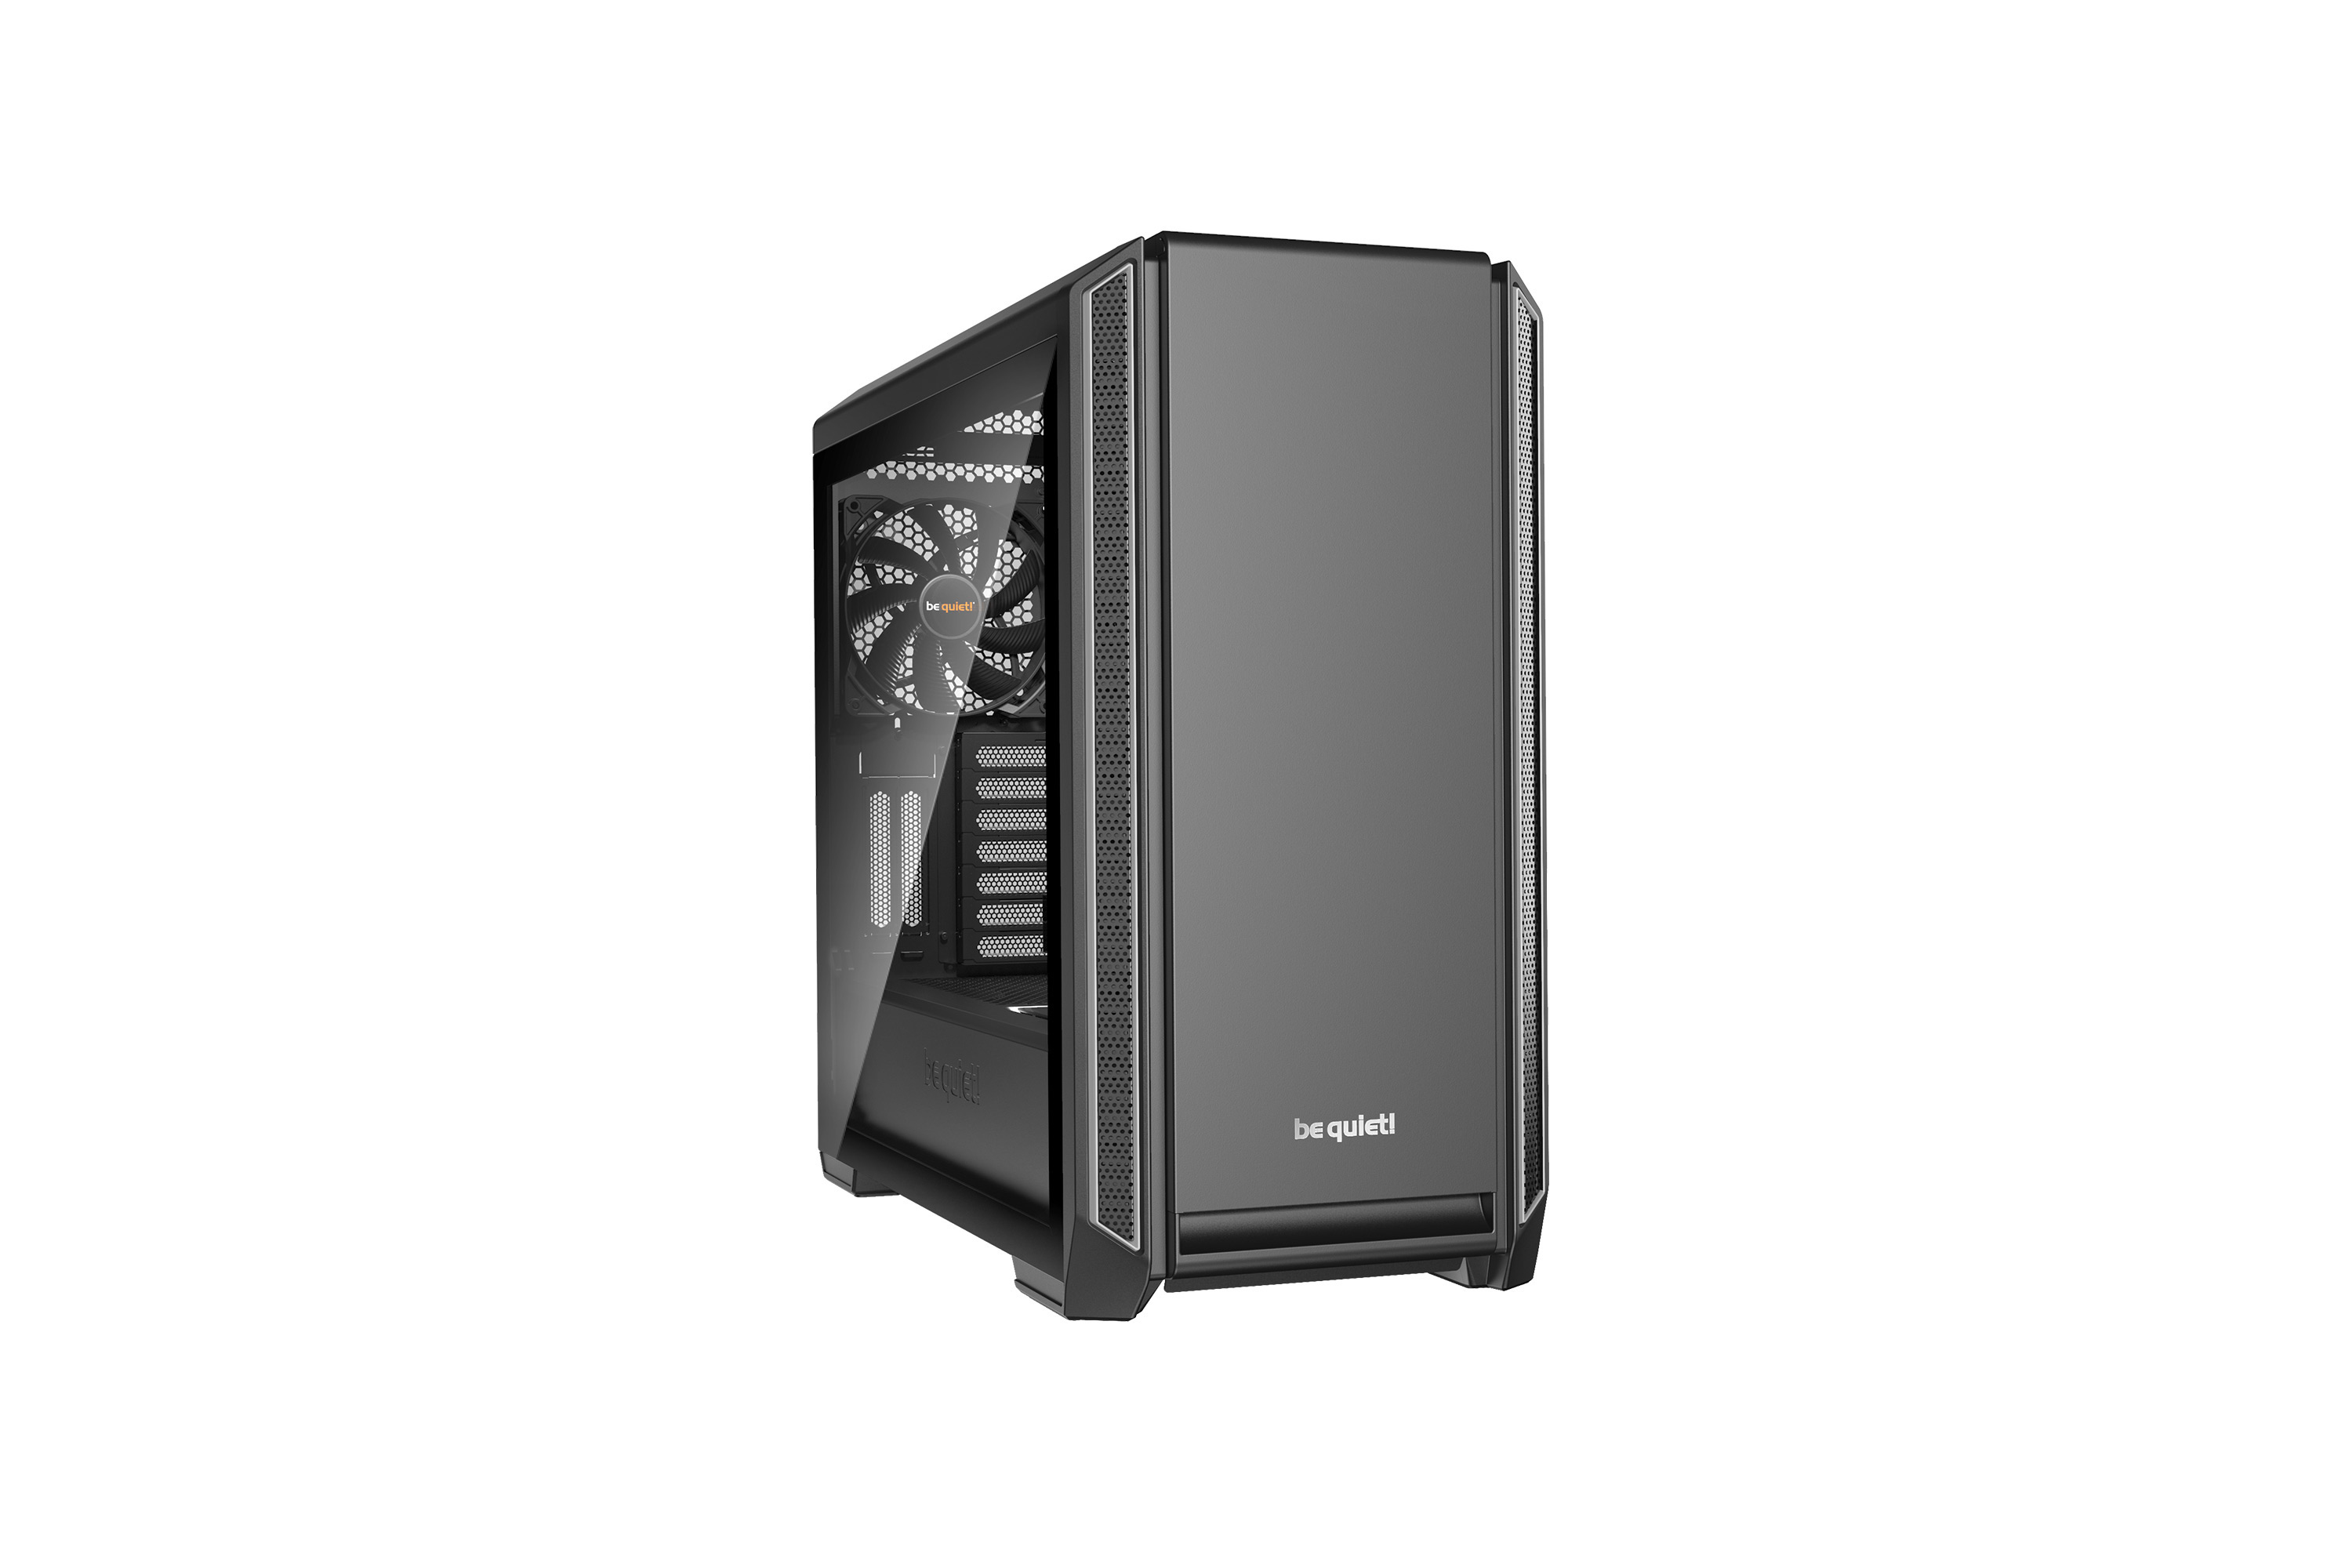 be quiet! Silent Base 601 Window Silver, 532 x 240 x 514, IO-panel 2x USB 3.0, 1x USB 2.0, HD Audio, 3 (7) x 3,5, 6 (14) x 2,5, inc 2x 140 mm Pure Wings 2, dual air channel cooling, Tinted and Tempered Glass side panel